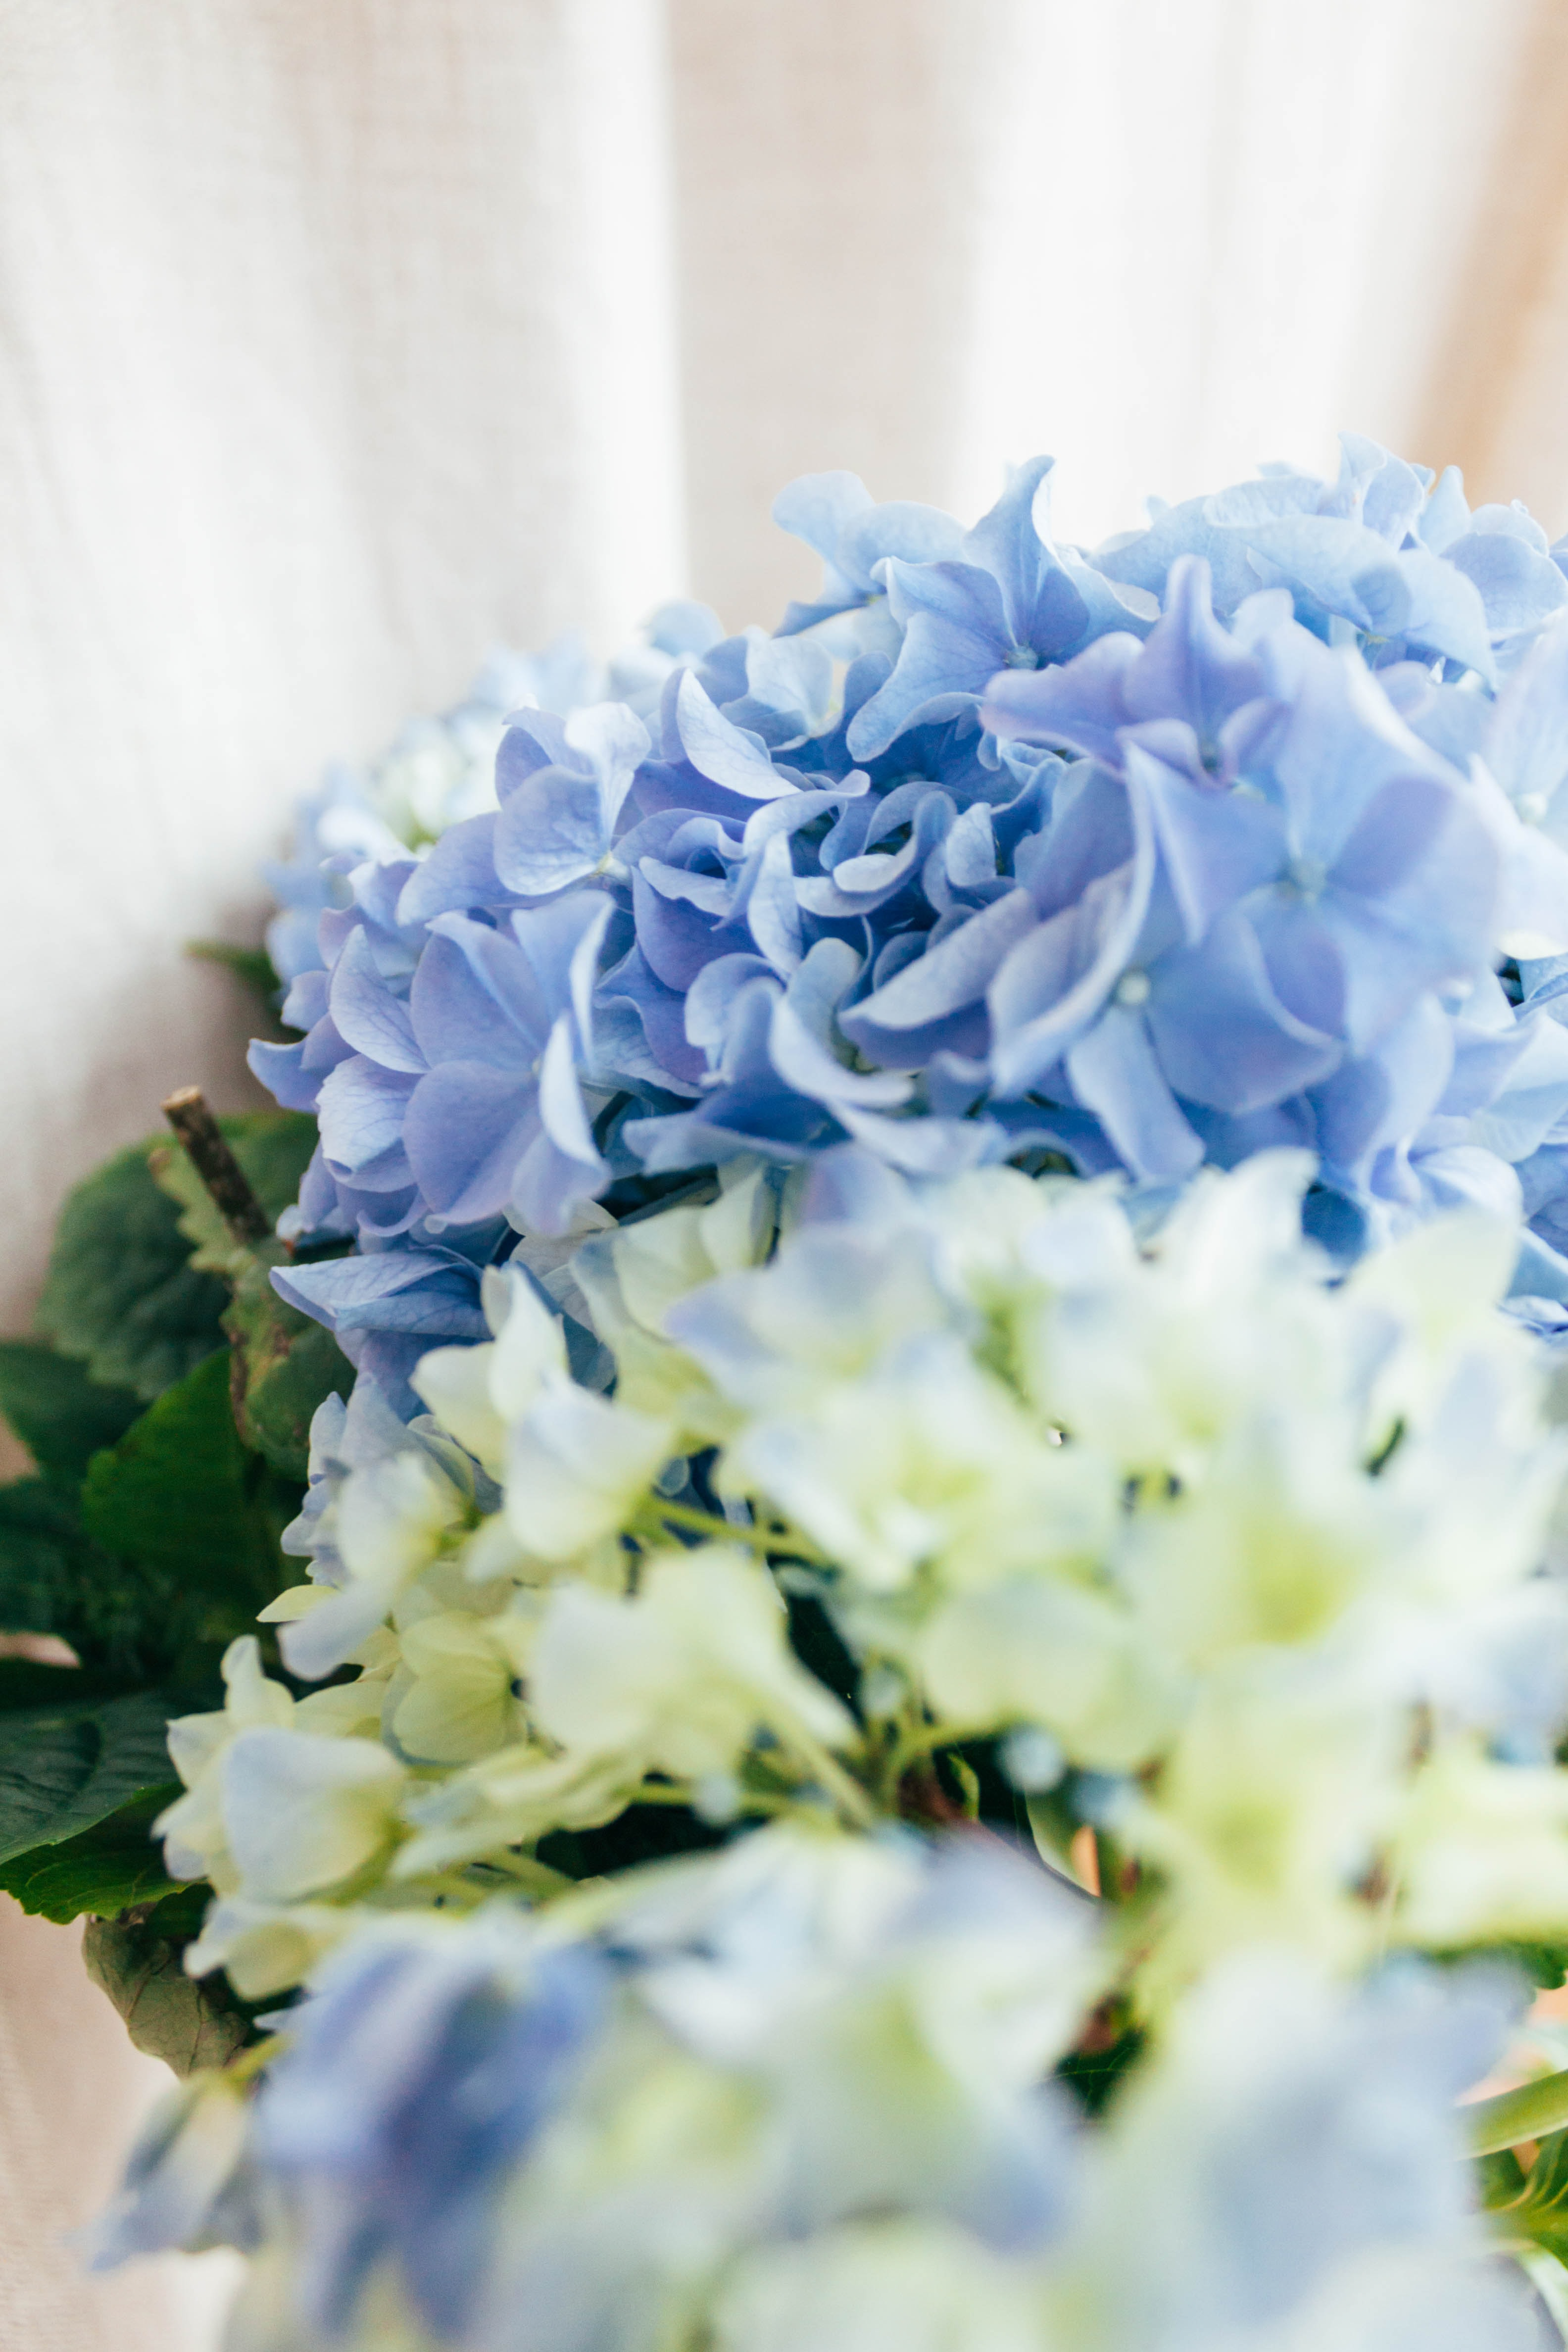 close-up photography of blue and yellow petaled flowers